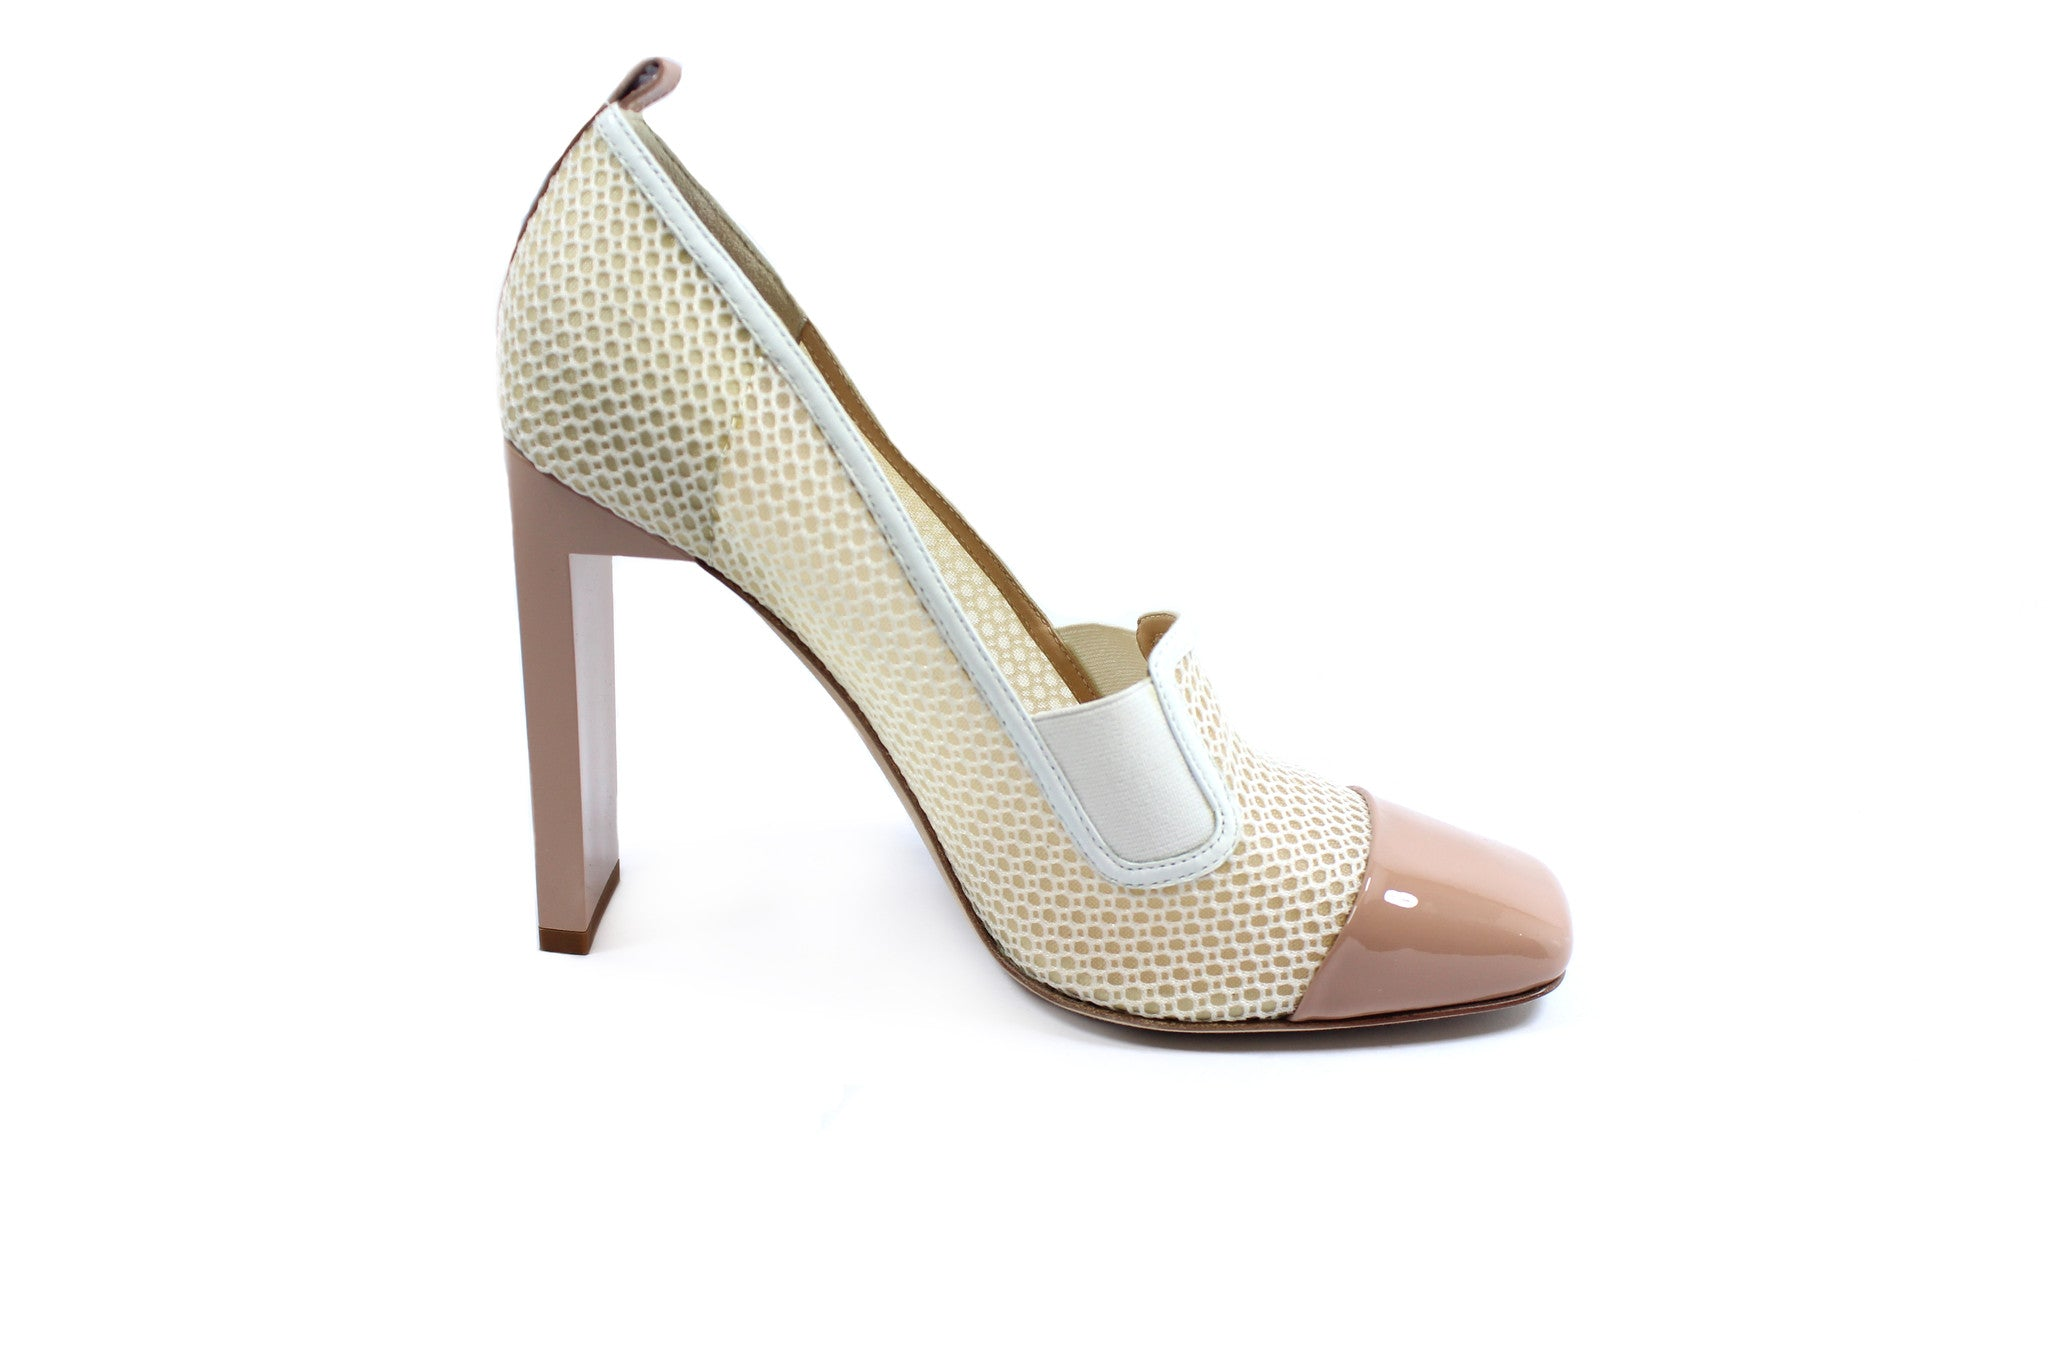 Reed Krakoff Mesh Atlas Nude and White Pumps (Size 38.5) - Encore Consignment - 7